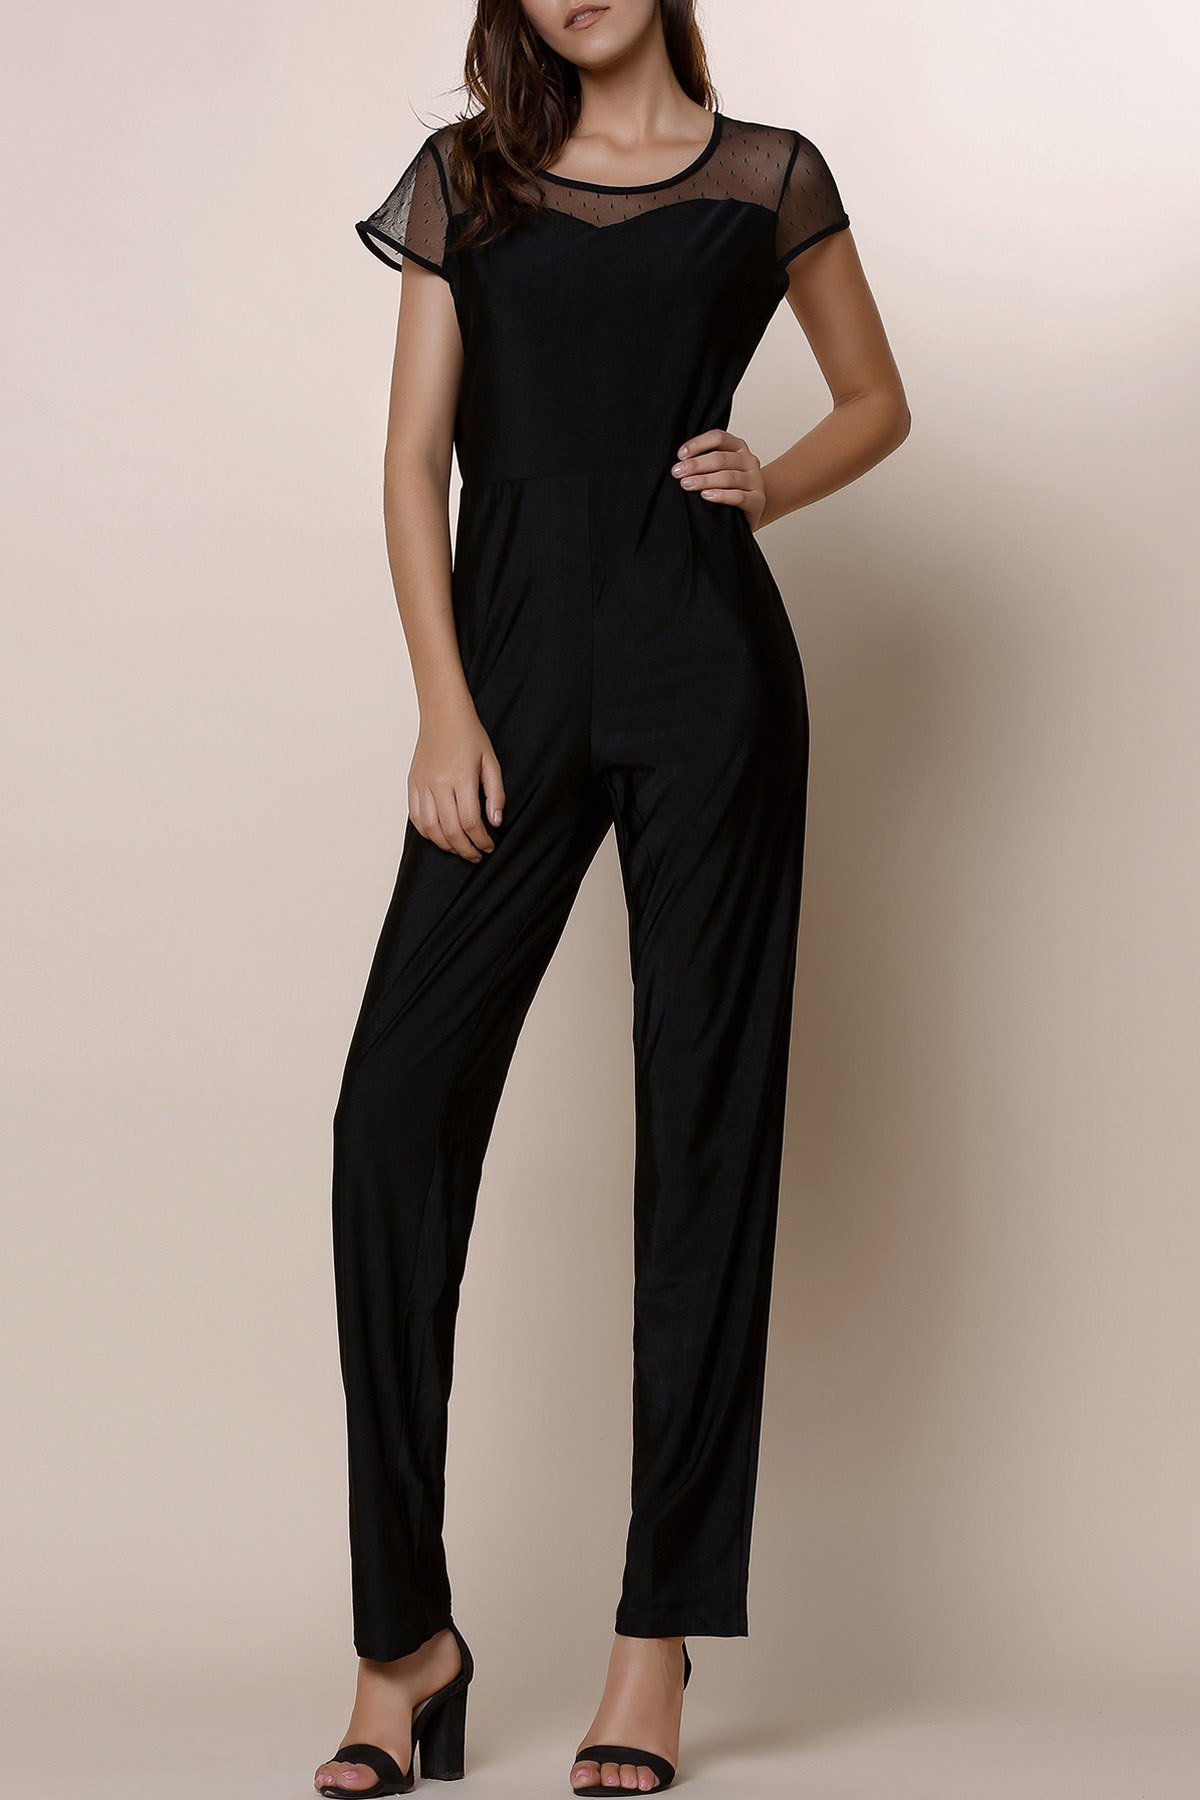 Stylish Gauze Spliced High Waist Bodycon Plus Size Jumpsuit For Women - BLACK 2XL